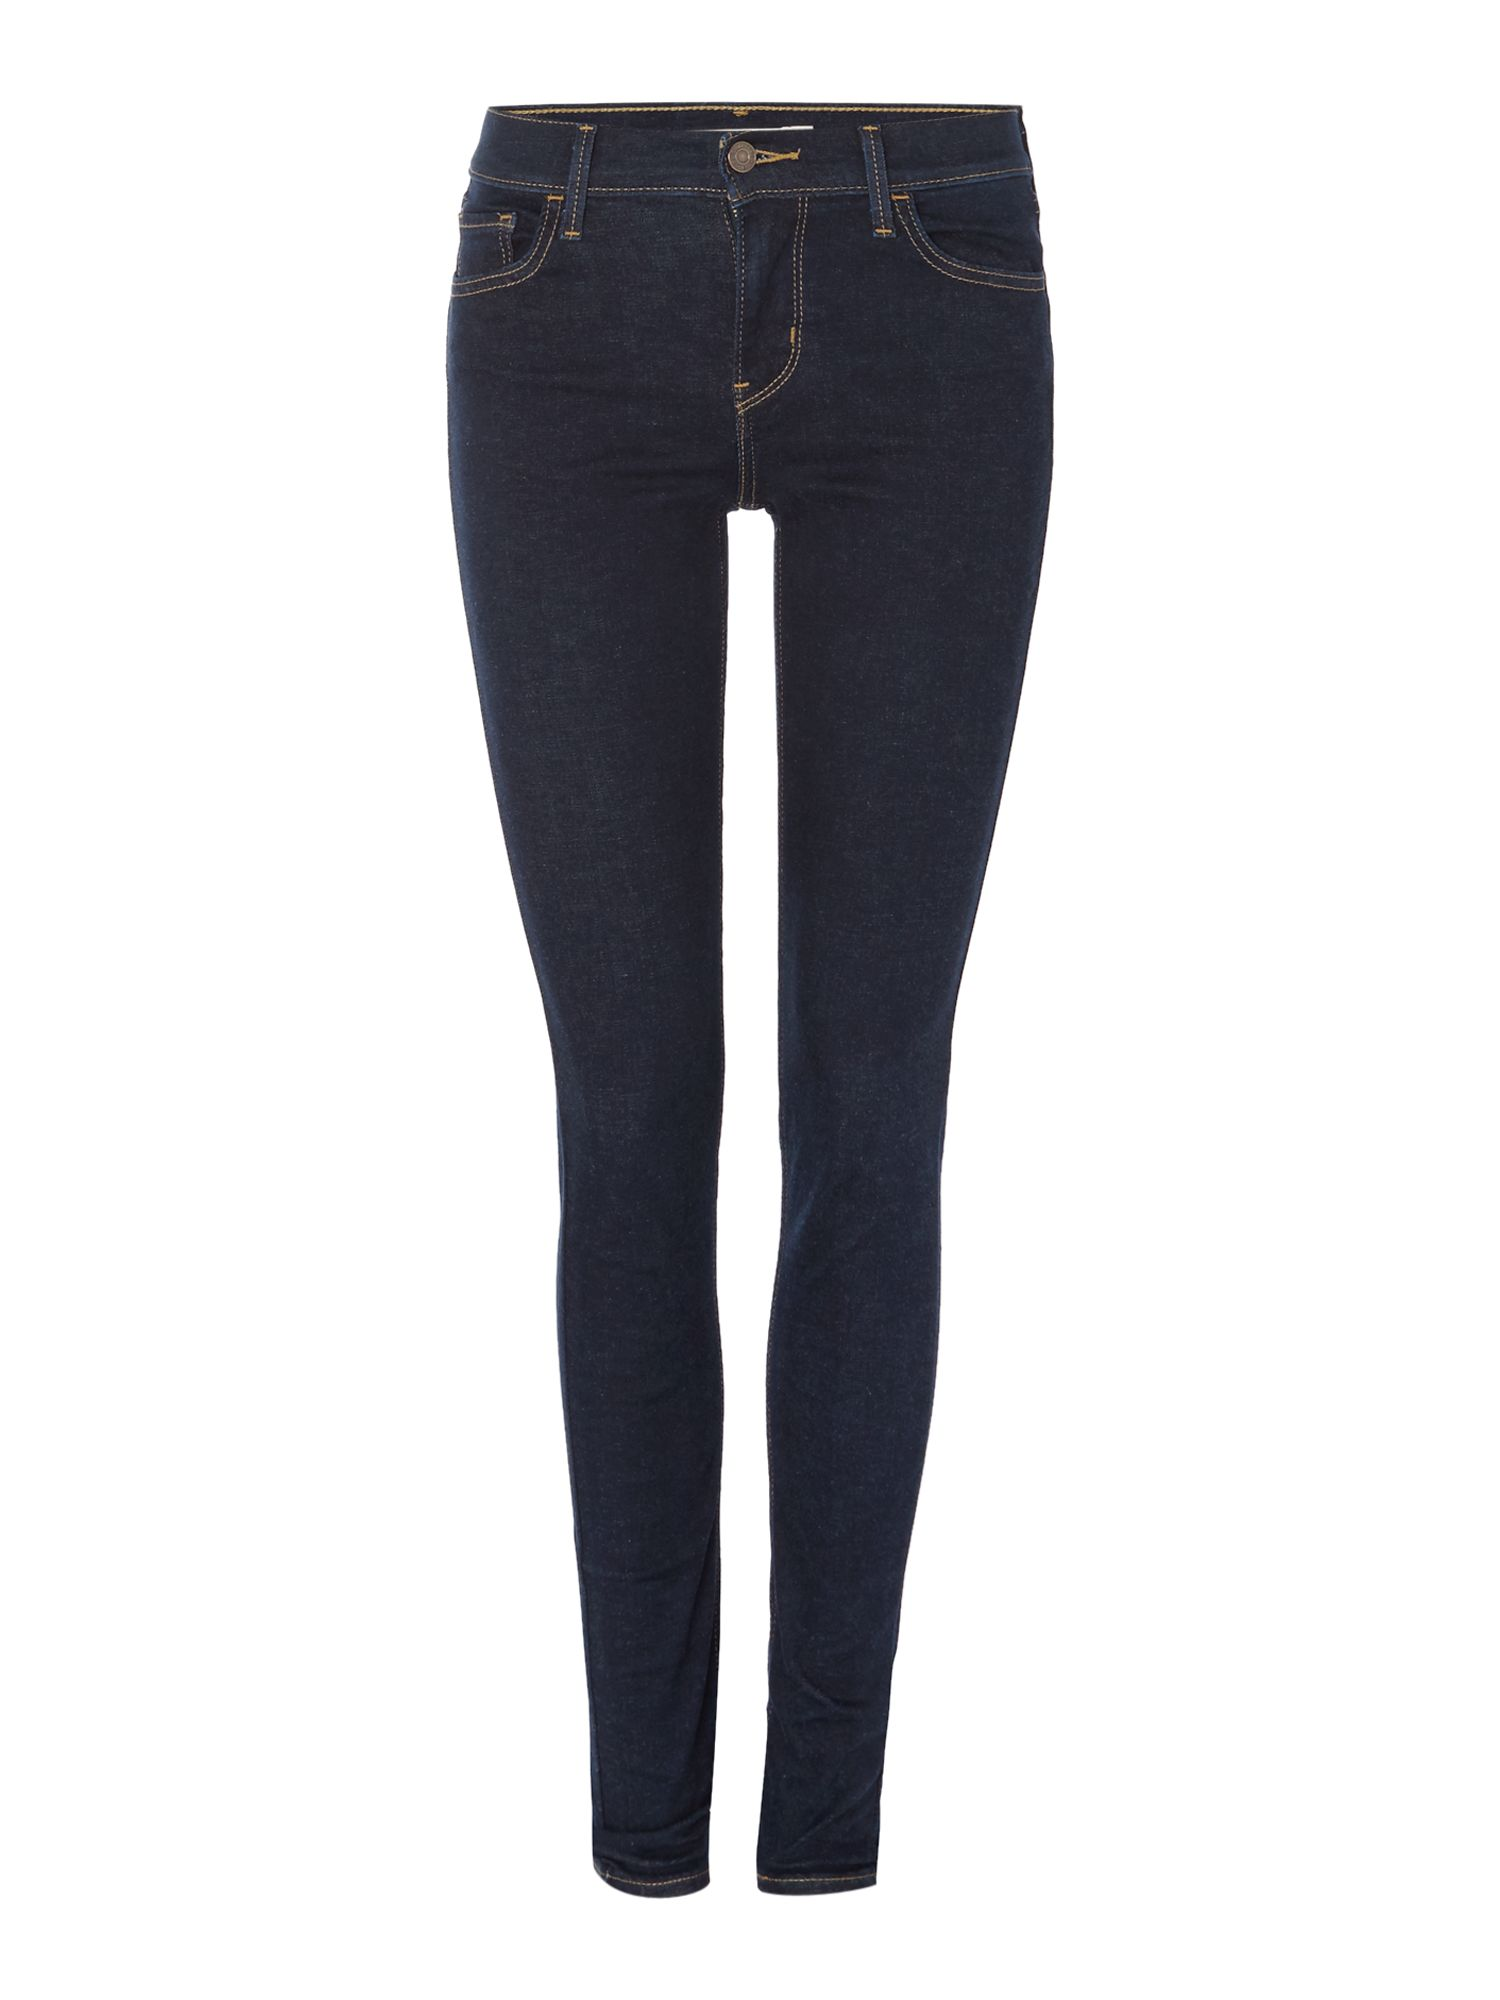 WOMEN'S SKINNY JEANS Skinny jeans are a staple in every modern wardrobe—and Levi's® skinny jeans for women are the best of the best. Not only do they flatter in all the right places, but they also come in a variety of shapes, sizes .